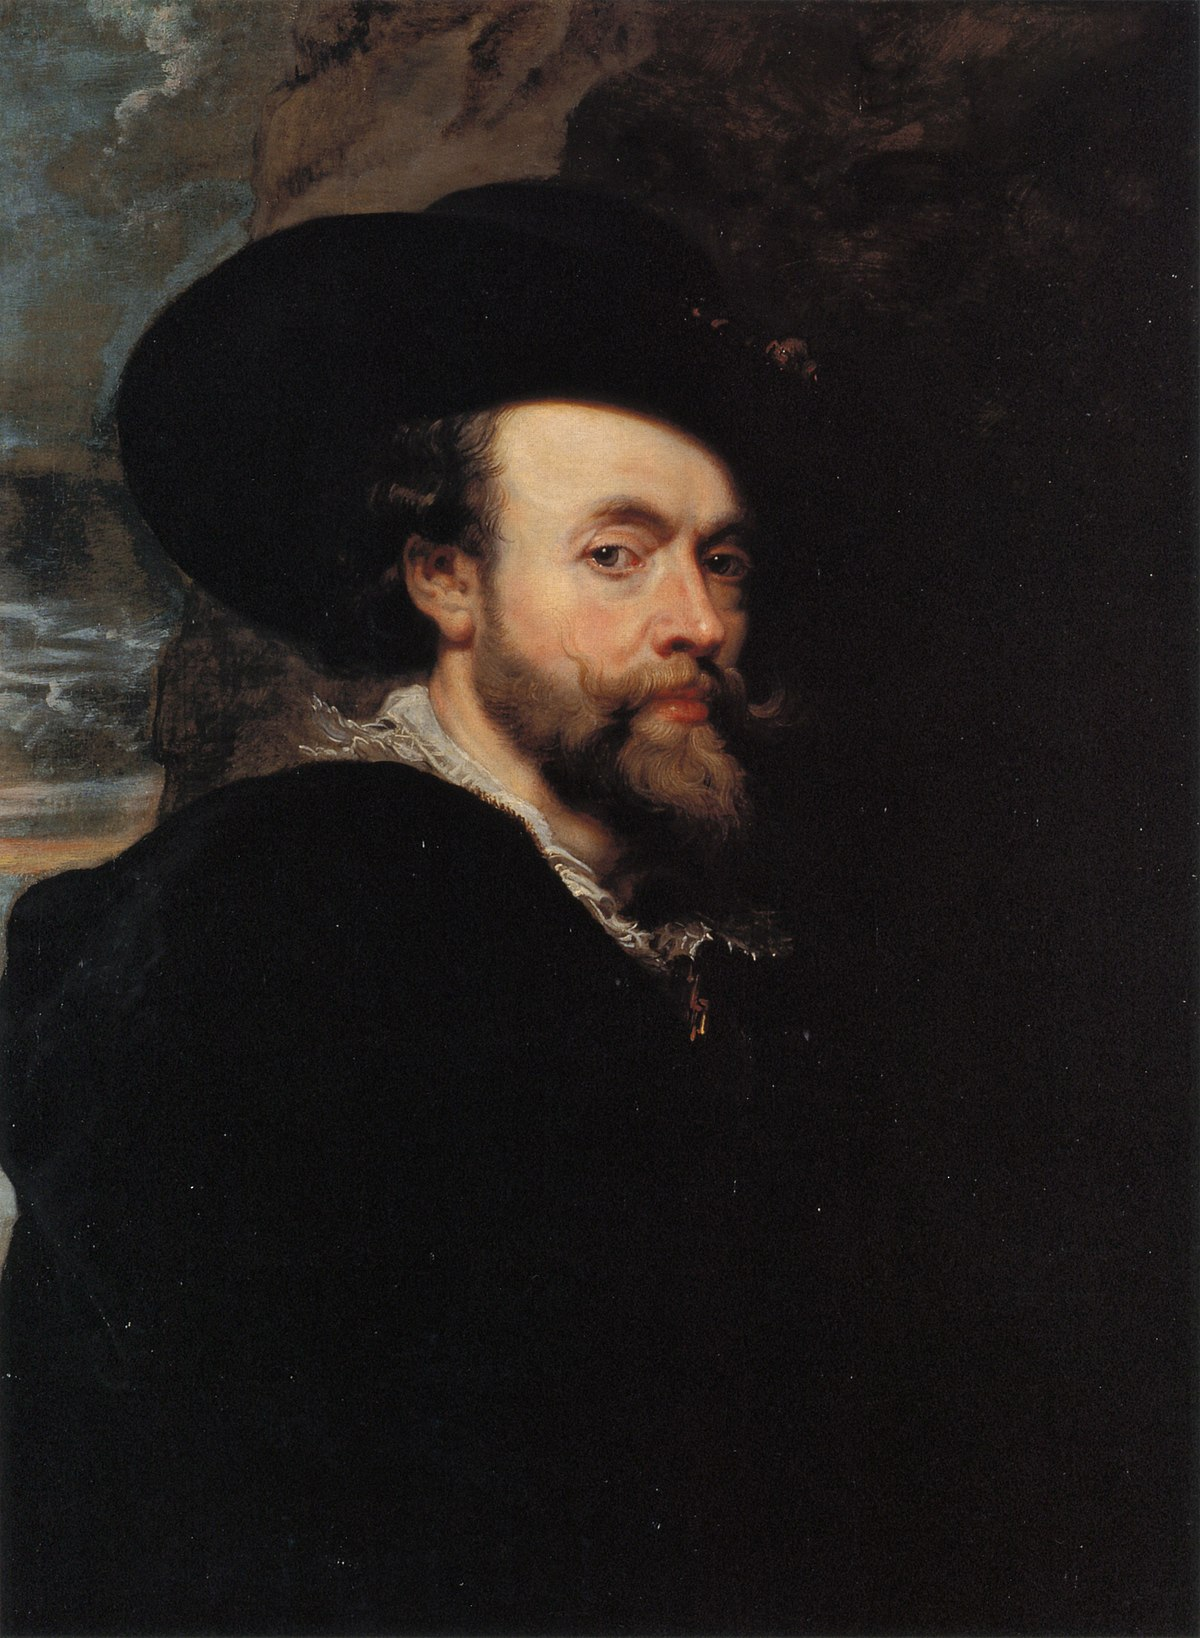 a comparison of peter paul rubens Peter paul rubens (1577–1640):  massachusetts, allowing a direct comparison for the first time the metropolitan museum's newly acquired, unpublished susanna drawing will be shown together with the dynamic susanna study from the musée atget, montpellier.